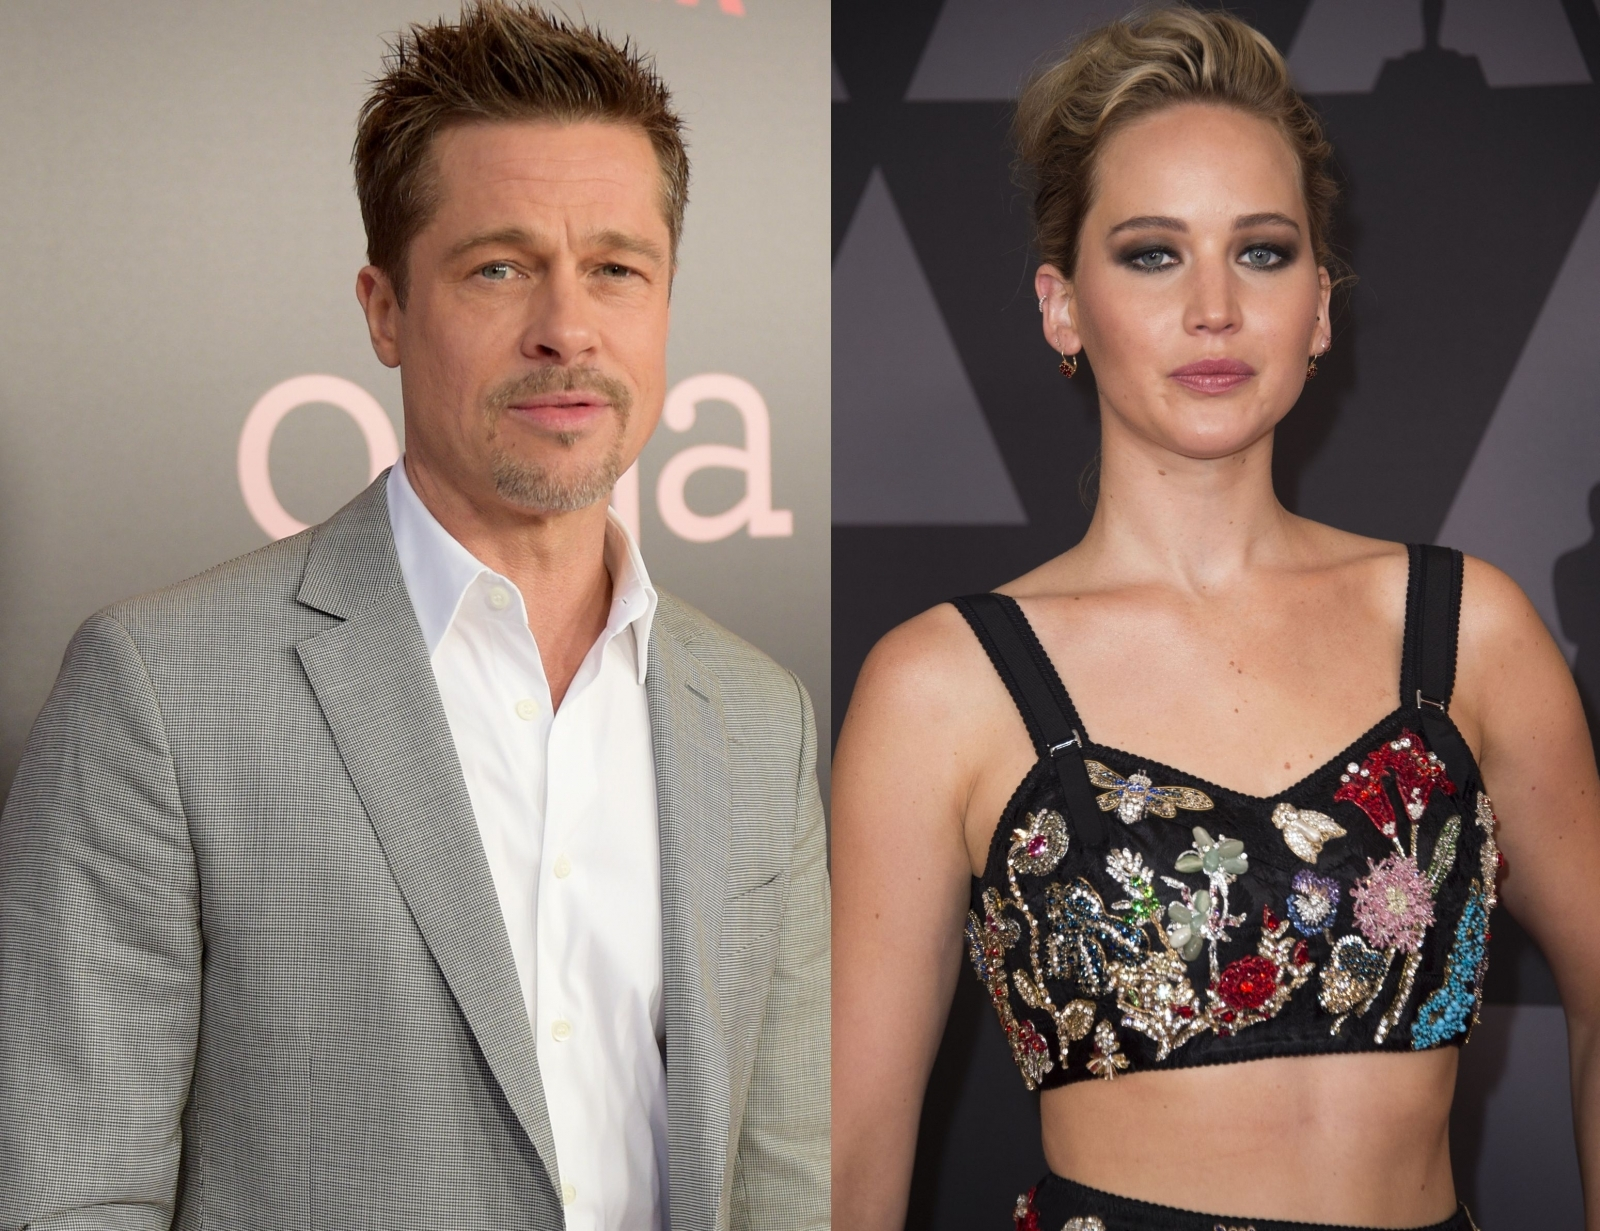 Brad Pitt and Jennifer Lawrence